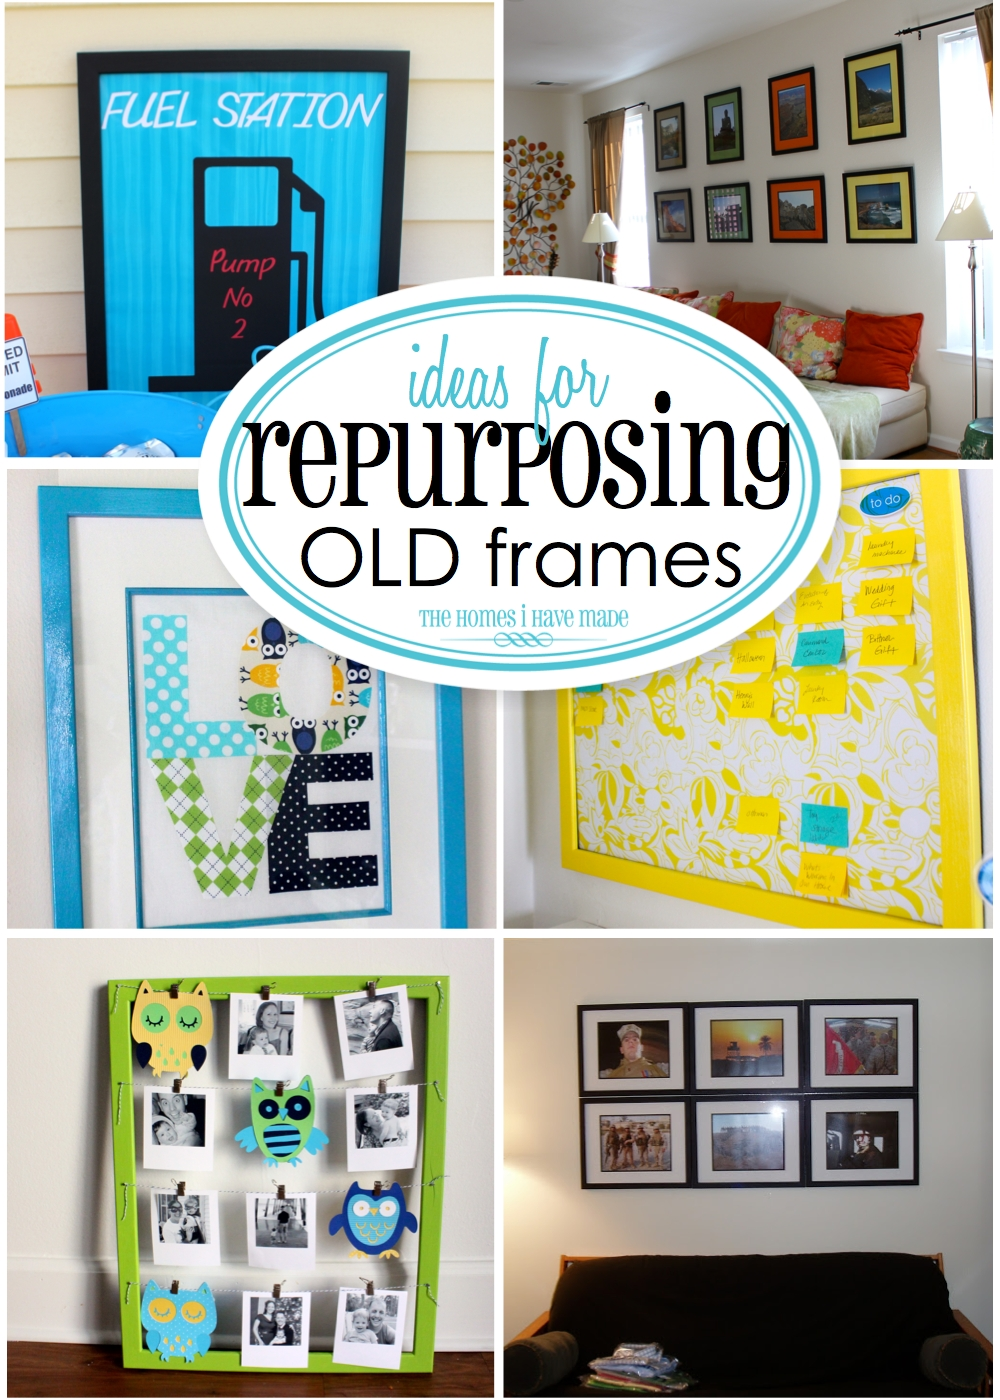 Repurposing ideas for picture frames just b cause for Creative ideas for old picture frames